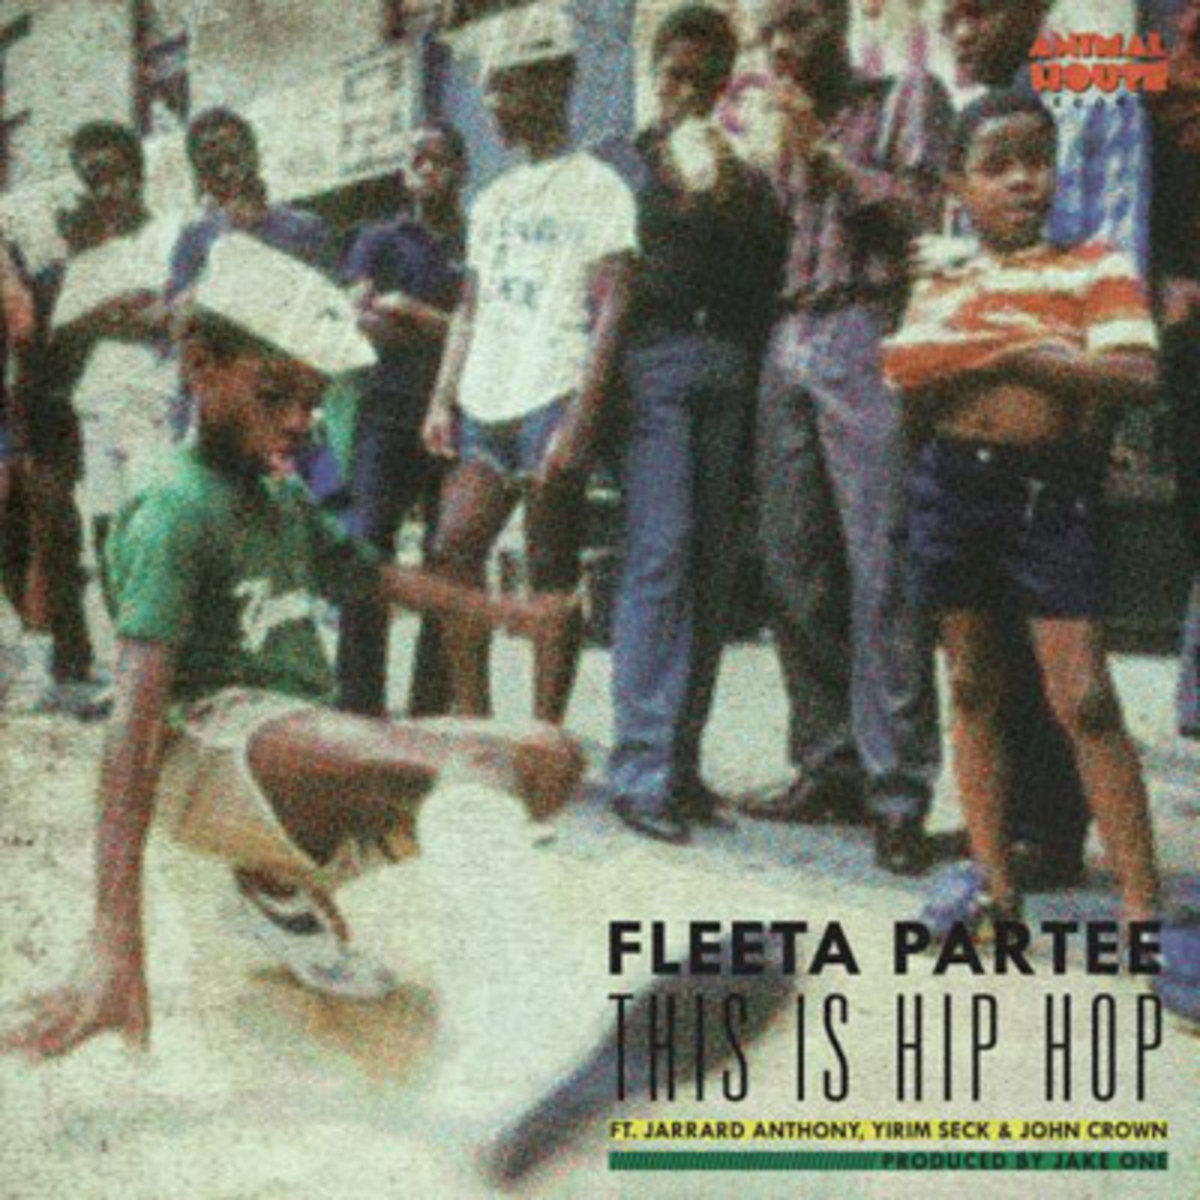 fleetapartee-thisishiphop.jpg